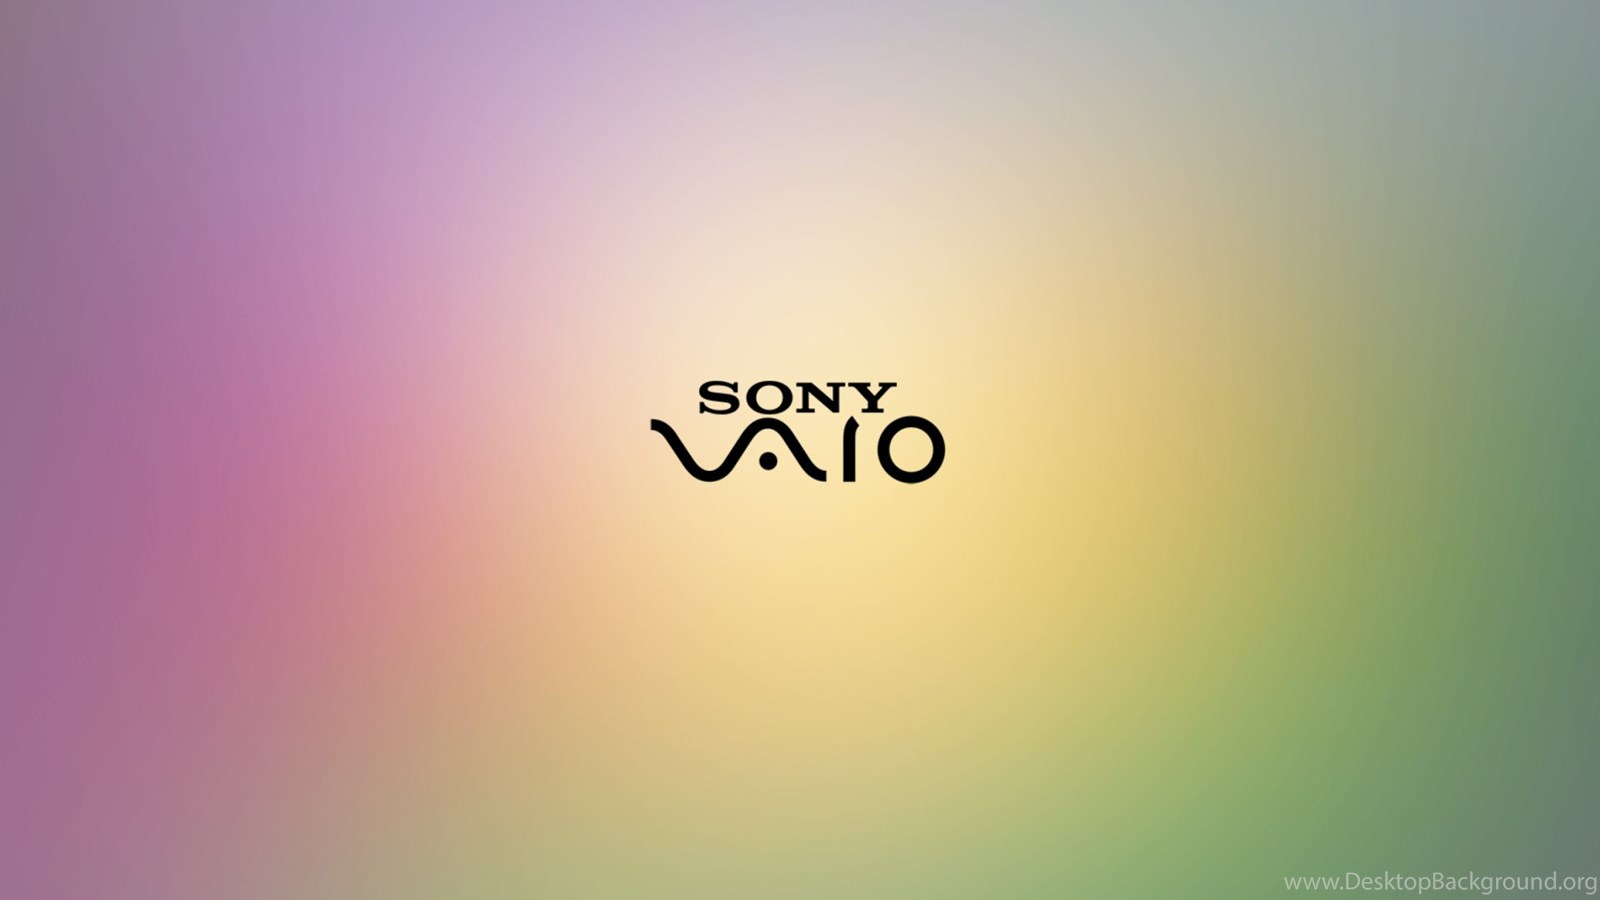 Sony vaio wallpapers for desktop 1920x1080 full hd desktop background - Sony vaio wallpaper 1280x800 ...